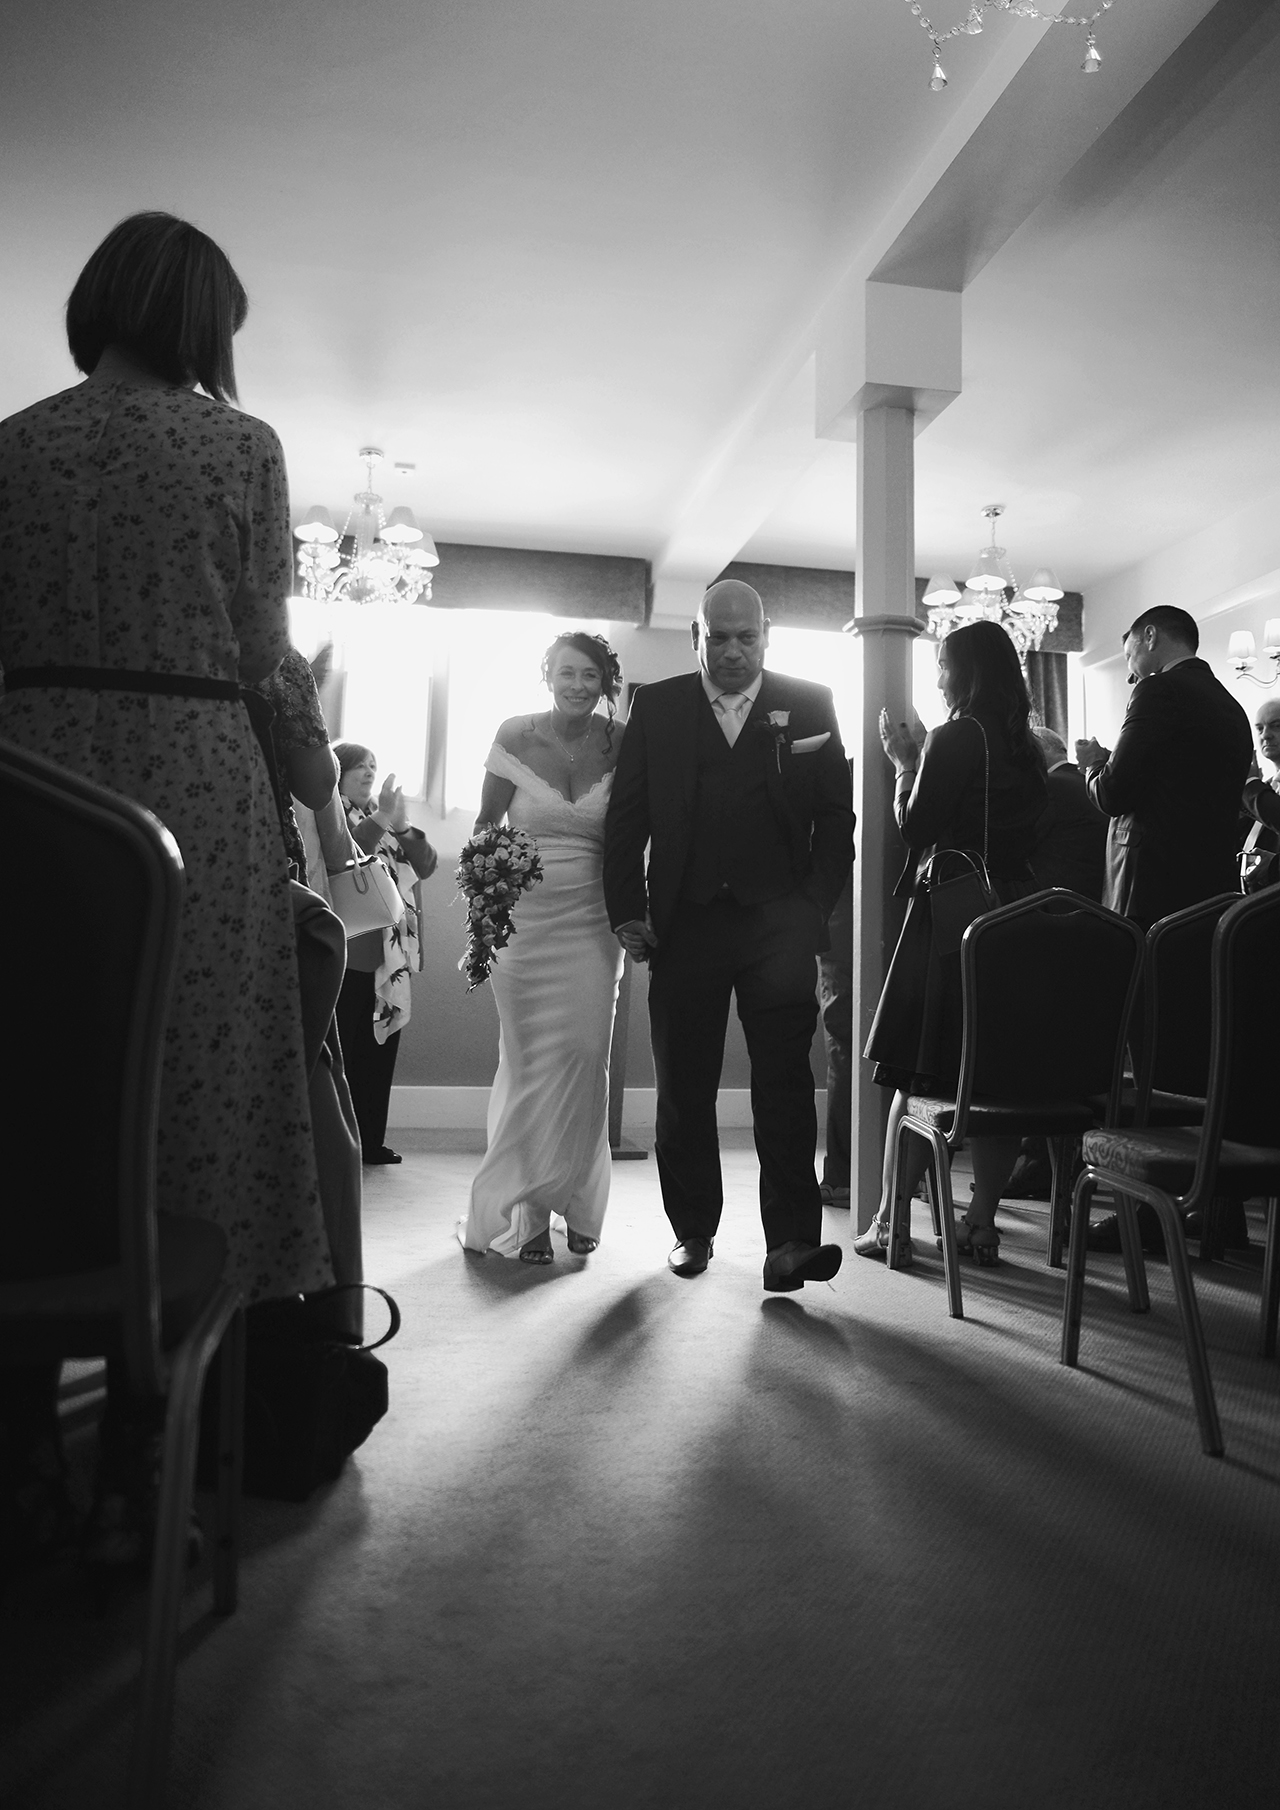 wedding-rochdale-photographer_30.jpg